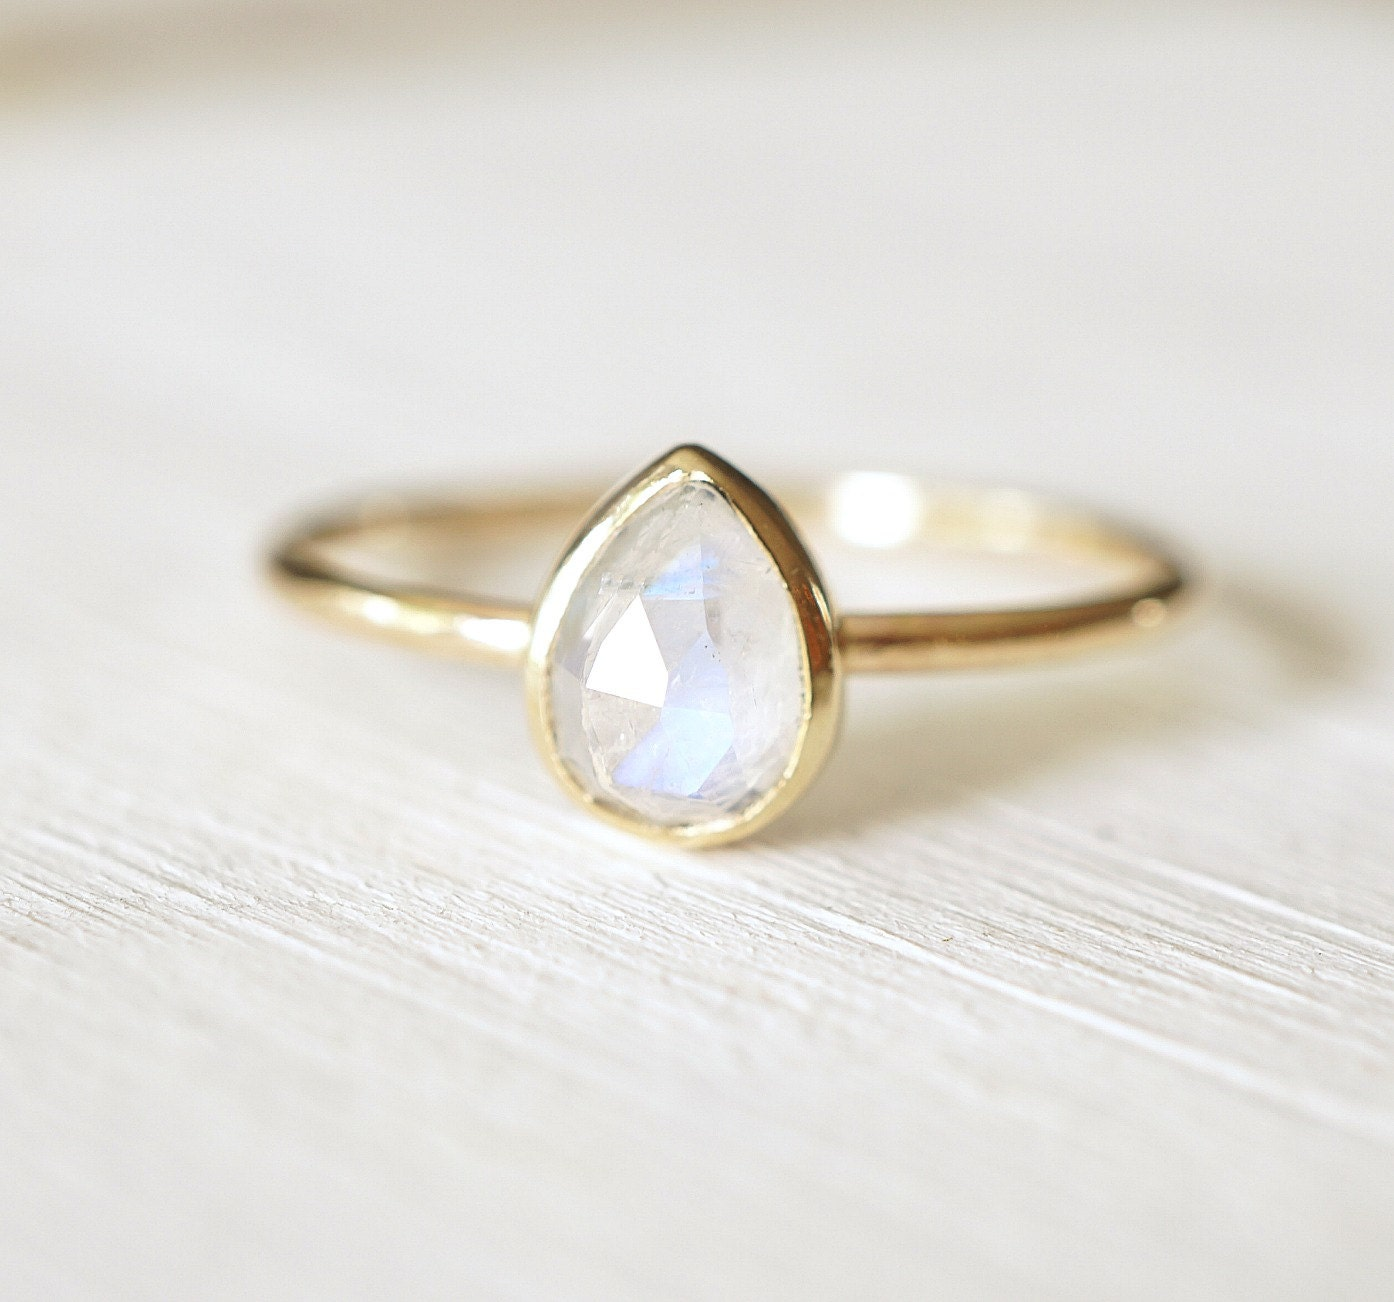 moonstone ring cut ring pear shaped ring 14k gold by